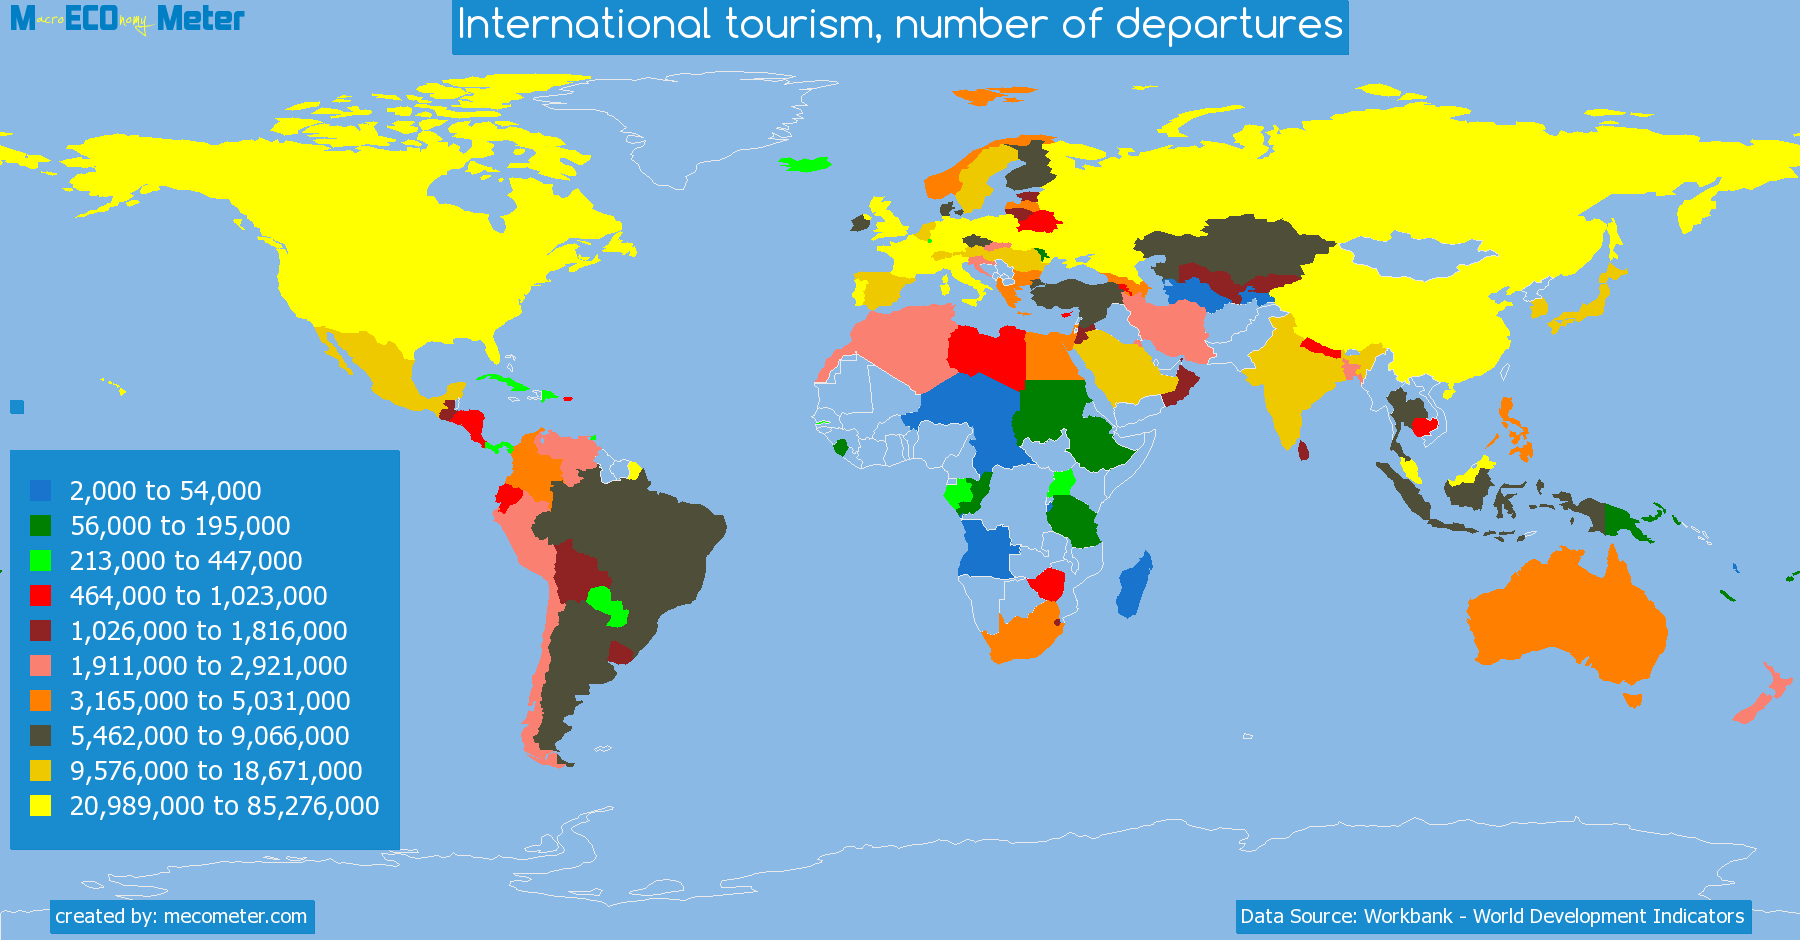 list of countries by International tourism, number of departures